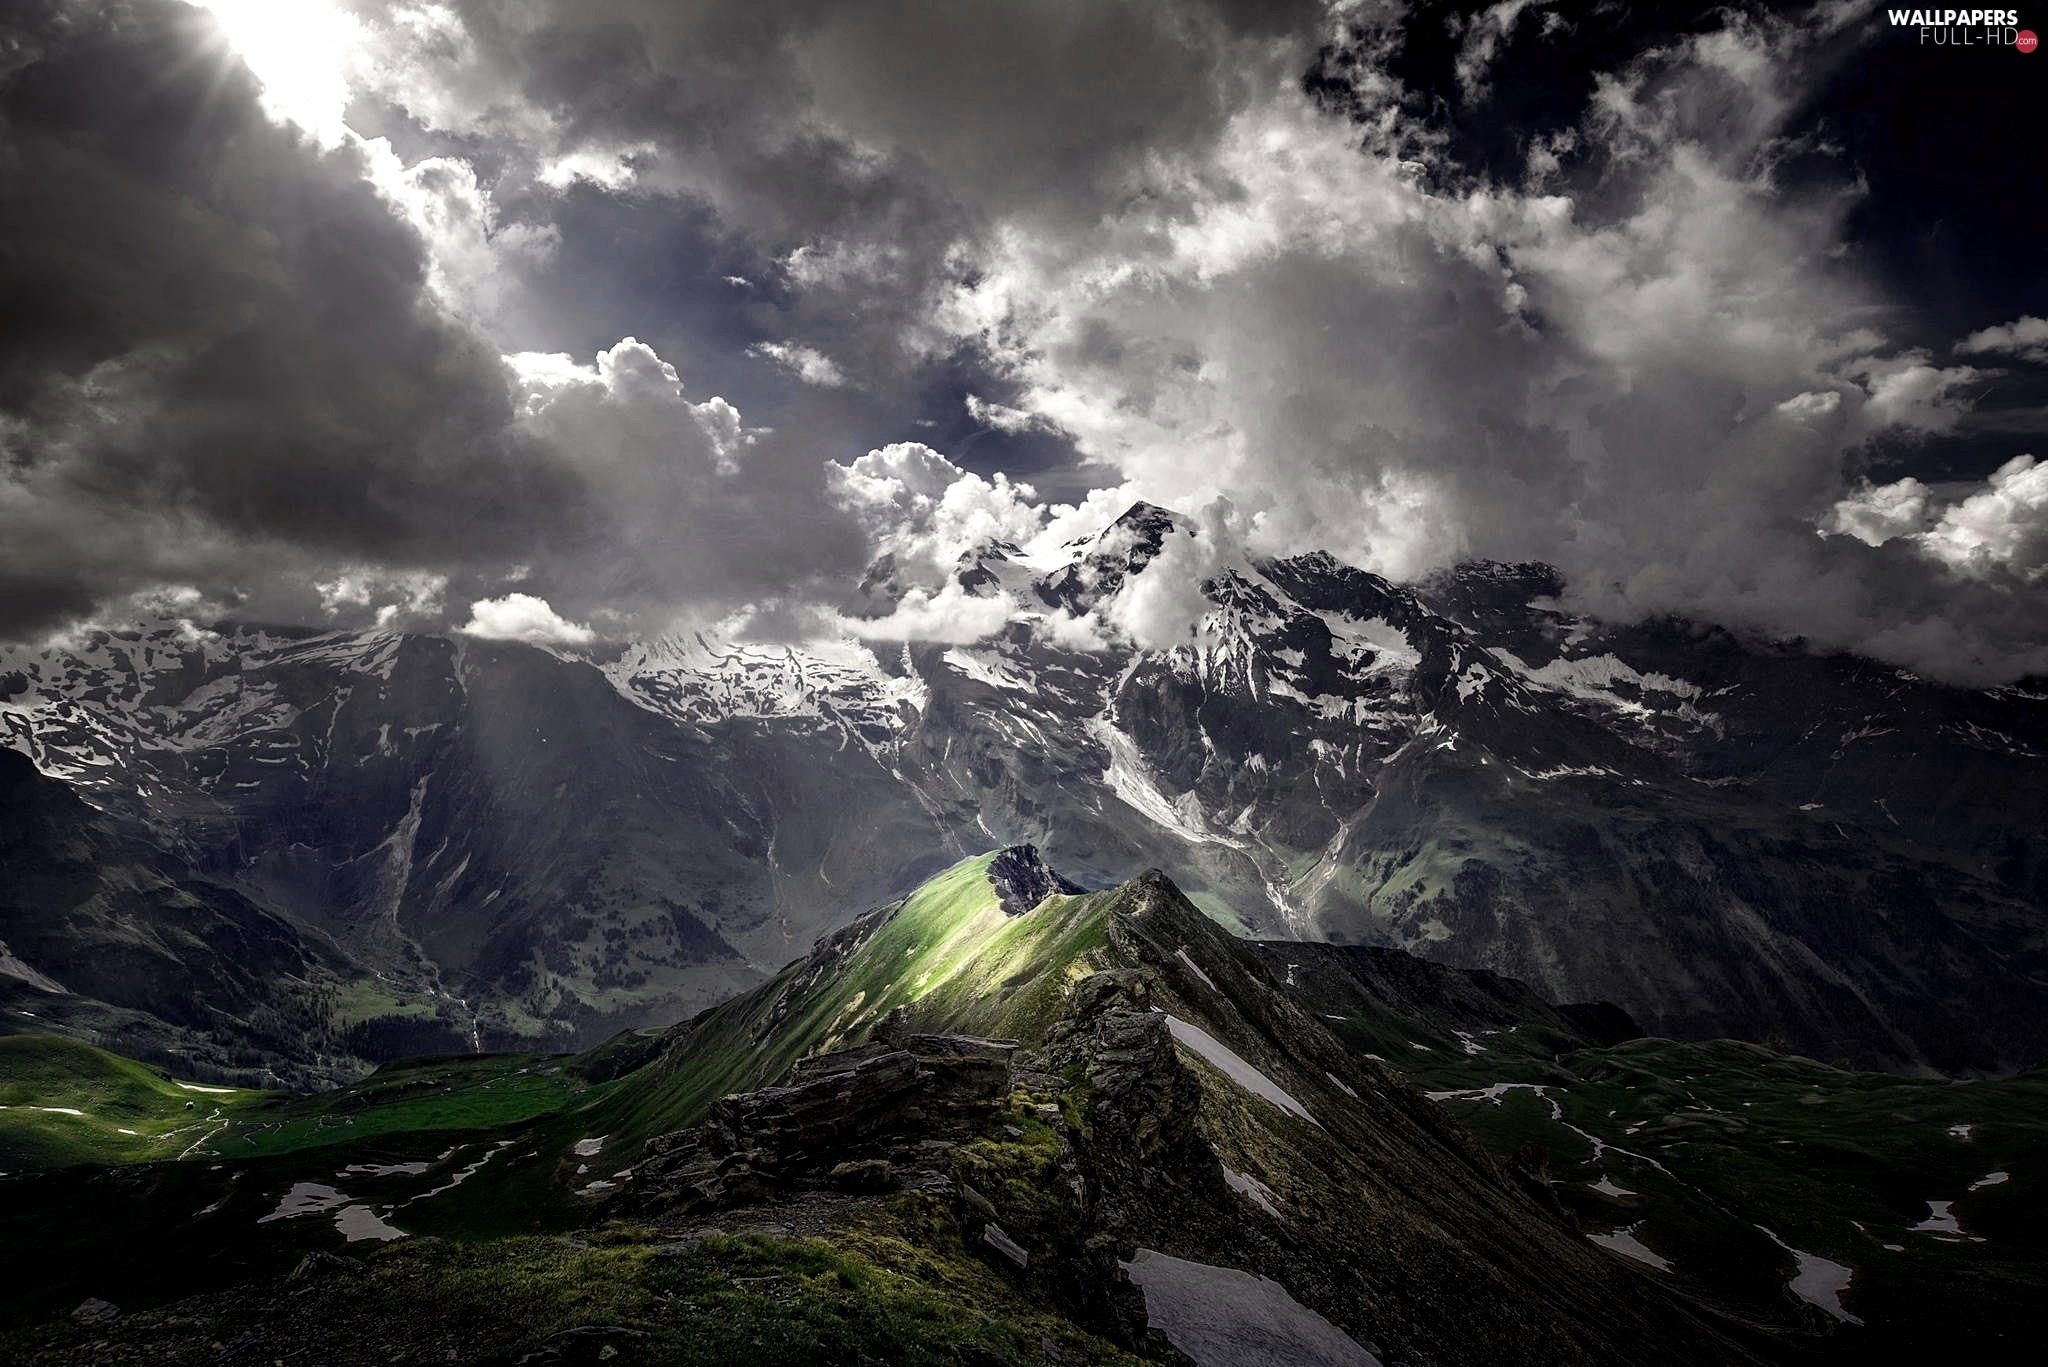 light breaking through sky, Mountains, clouds